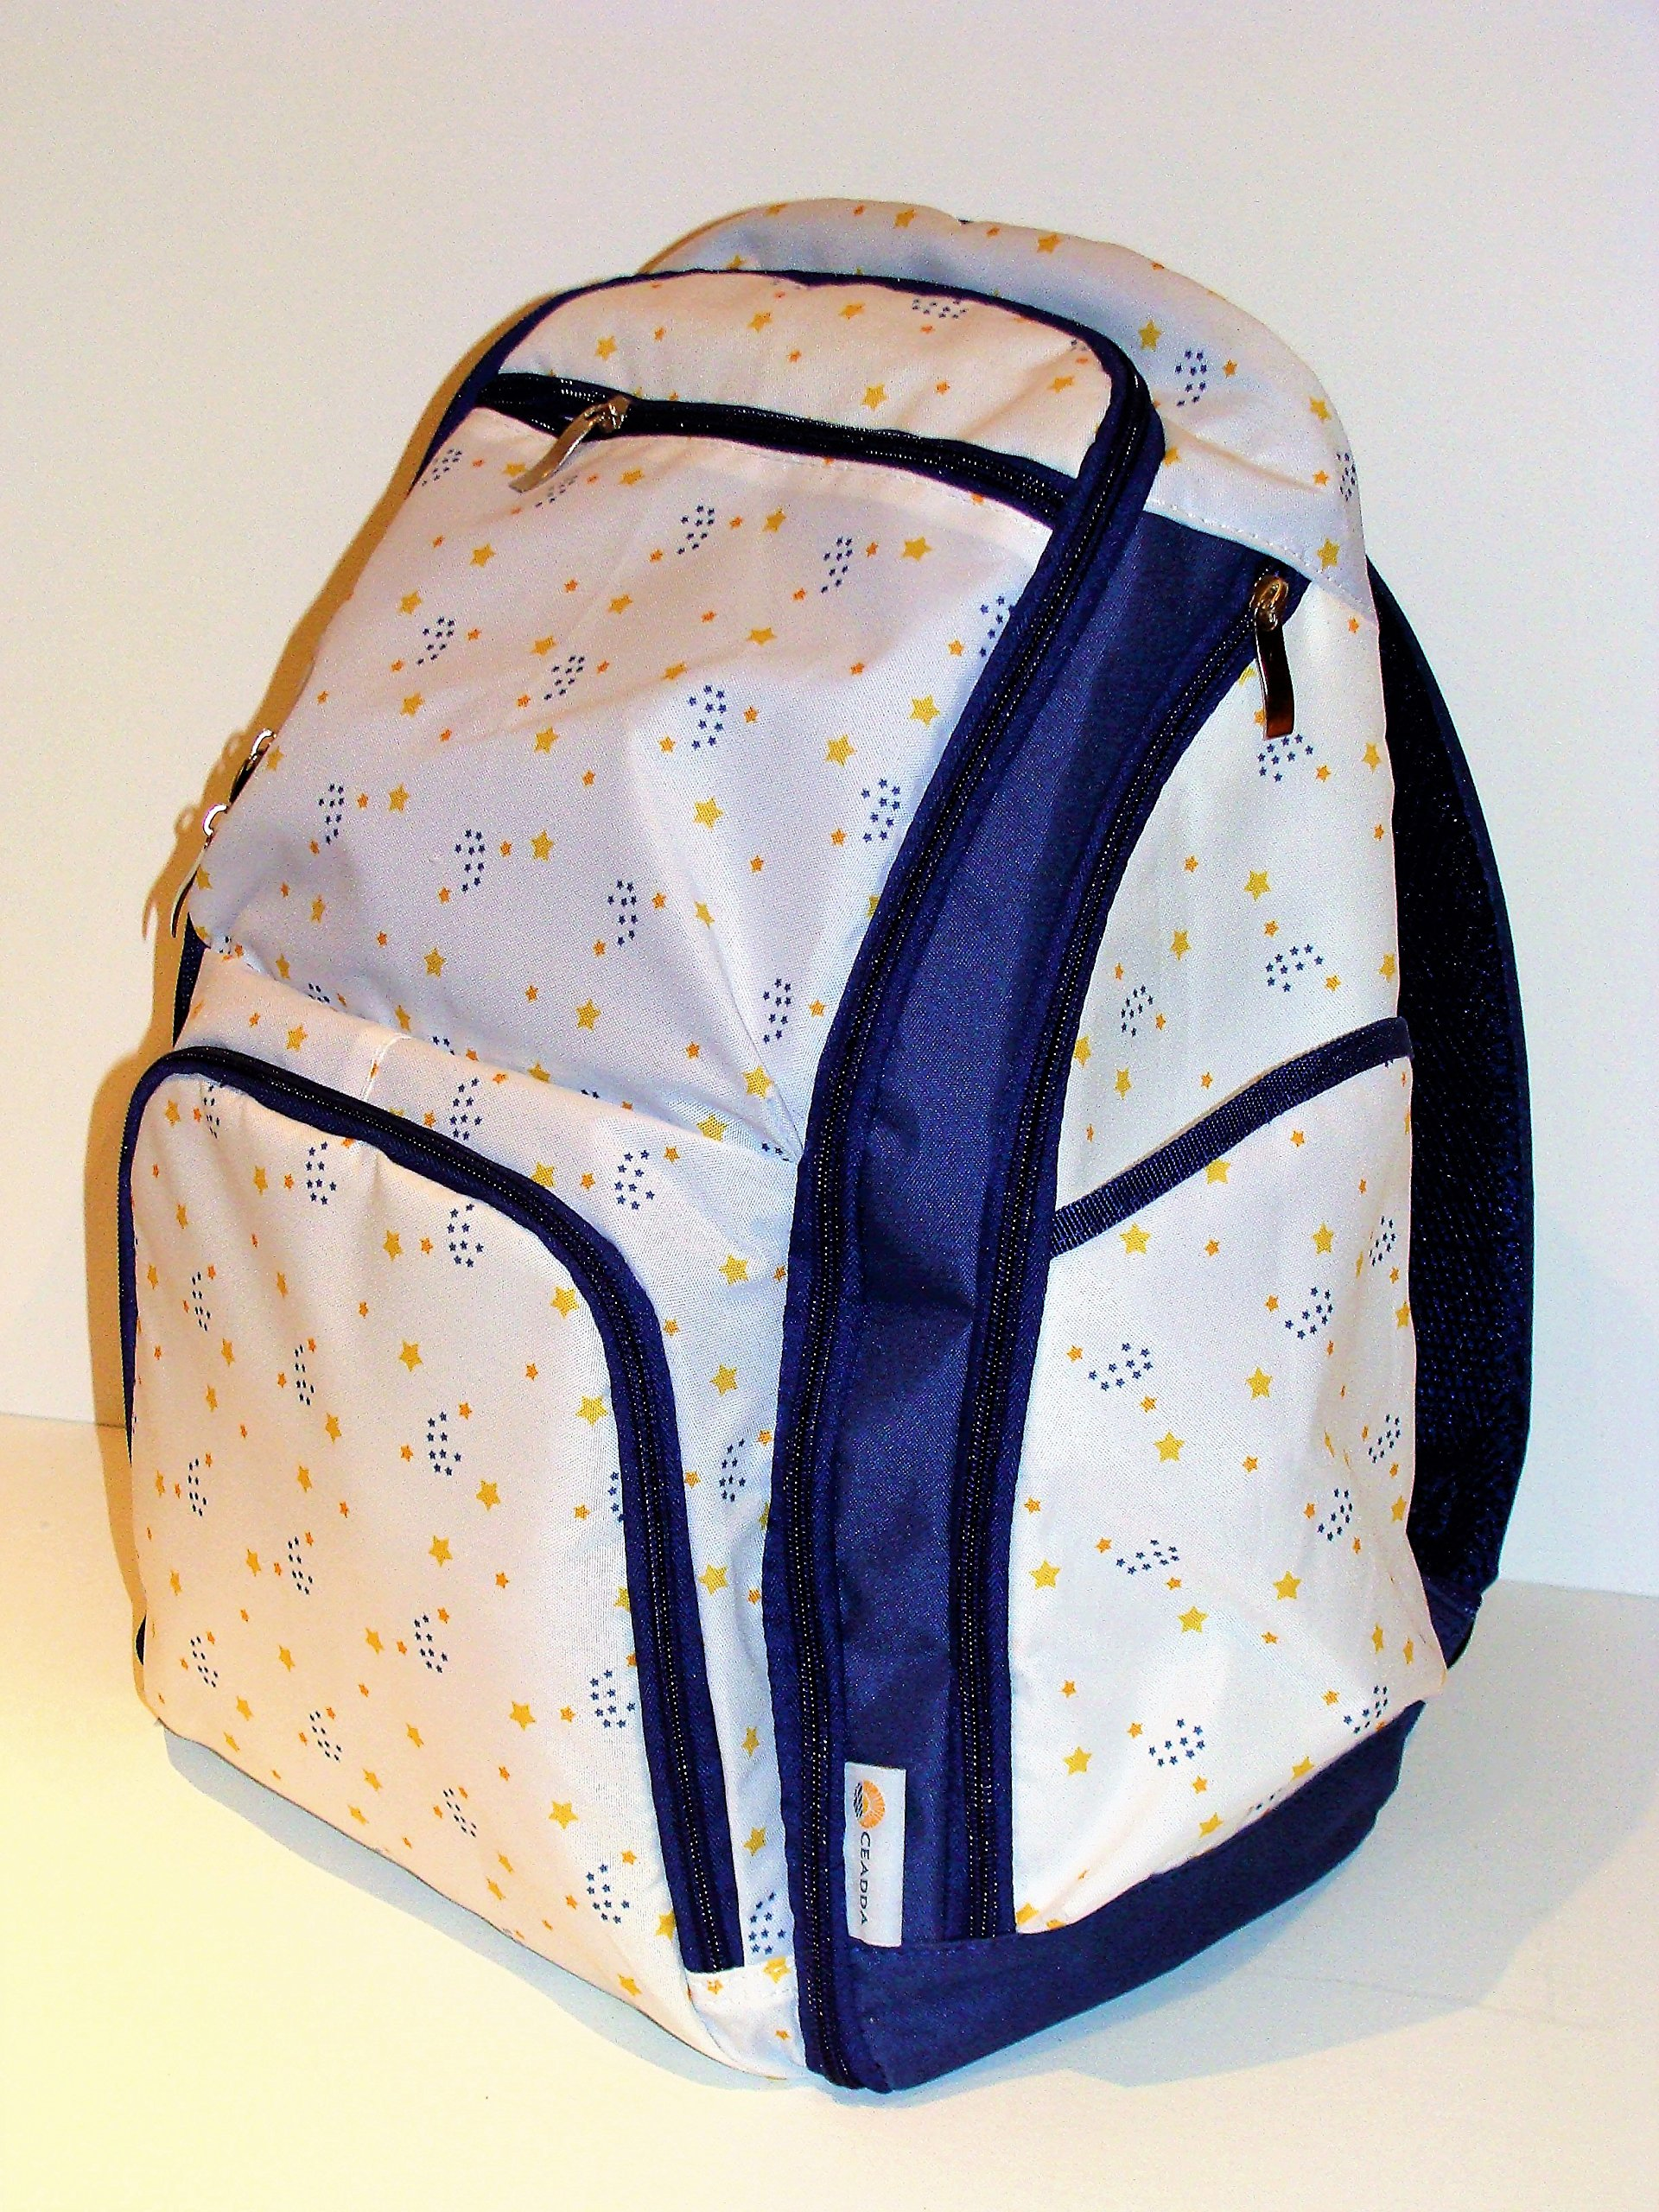 FLASH SALE!!!! Large Capacity Designer Baby Travel Diaper Nappy Backpack Bag Durable Lightweight Easy Clean Fabric Stroller Straps Insulated Storage Pocket Padded Carry Back Bonus Changing Mat